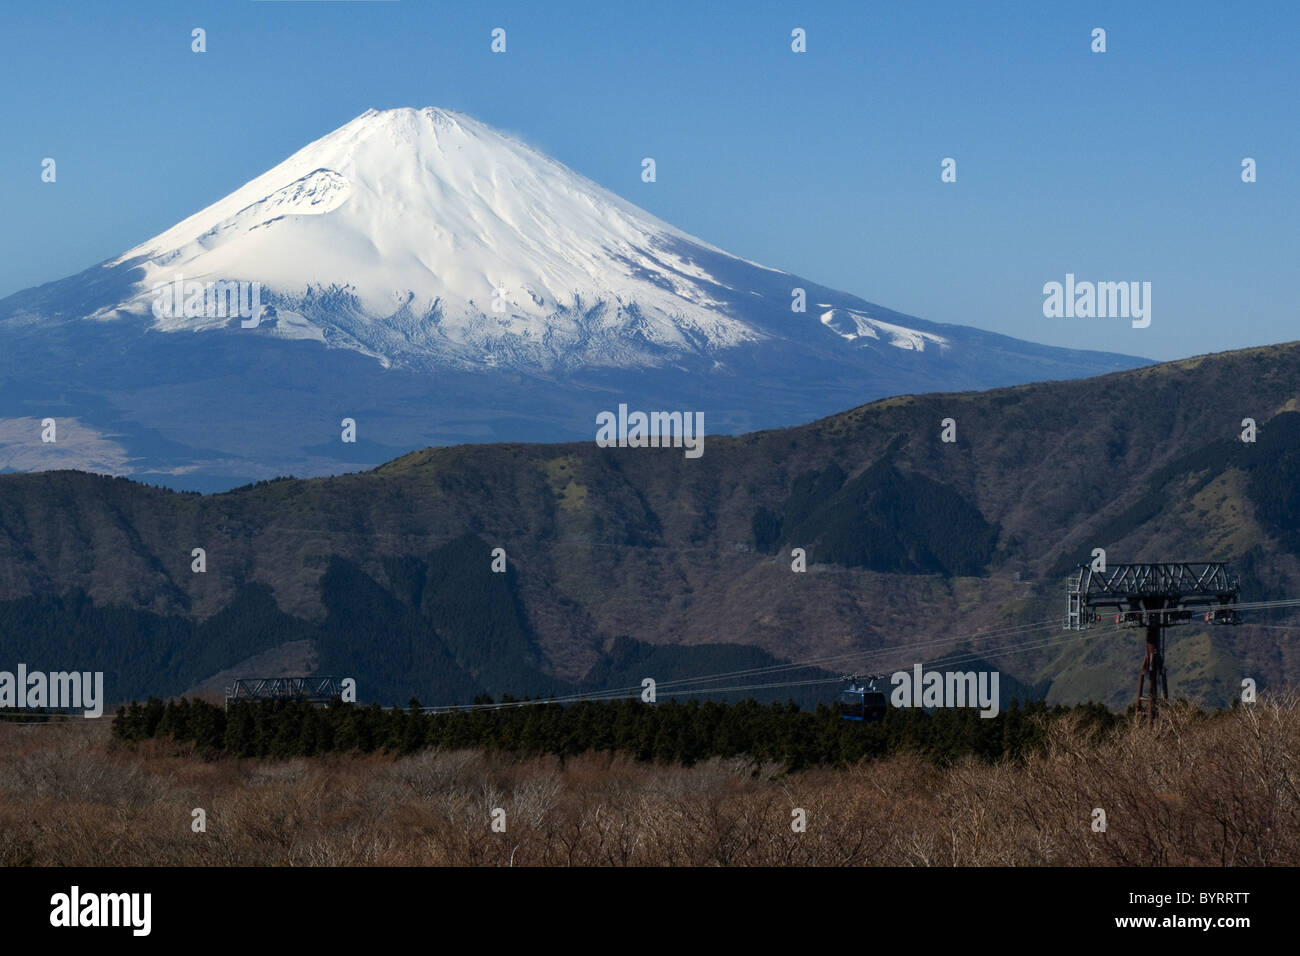 View of snow capped mount Fuji, Japan. early spring from Lake Ashi, Fuji-Hakone-Izu National Park. - Stock Image